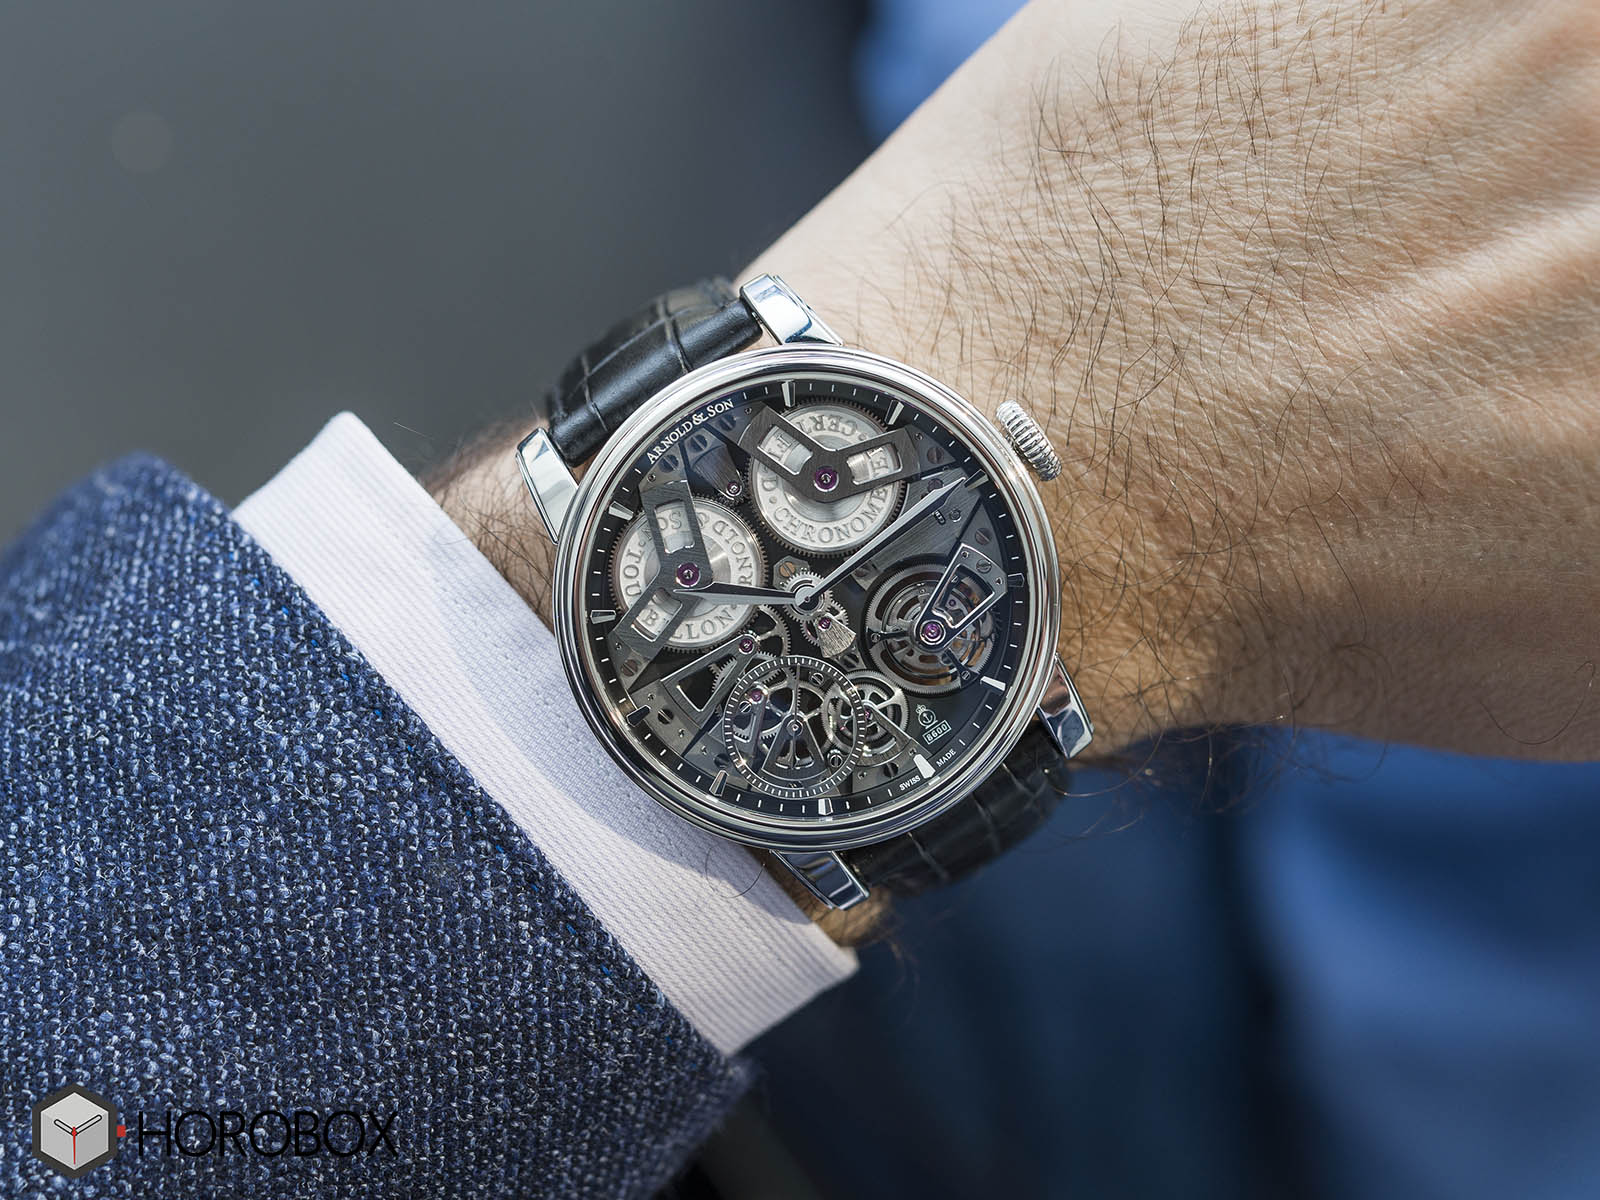 1etas-b01a-c113s-arnold-son-tourbillon-chronometer-no-36-tribute-edition-9.jpg